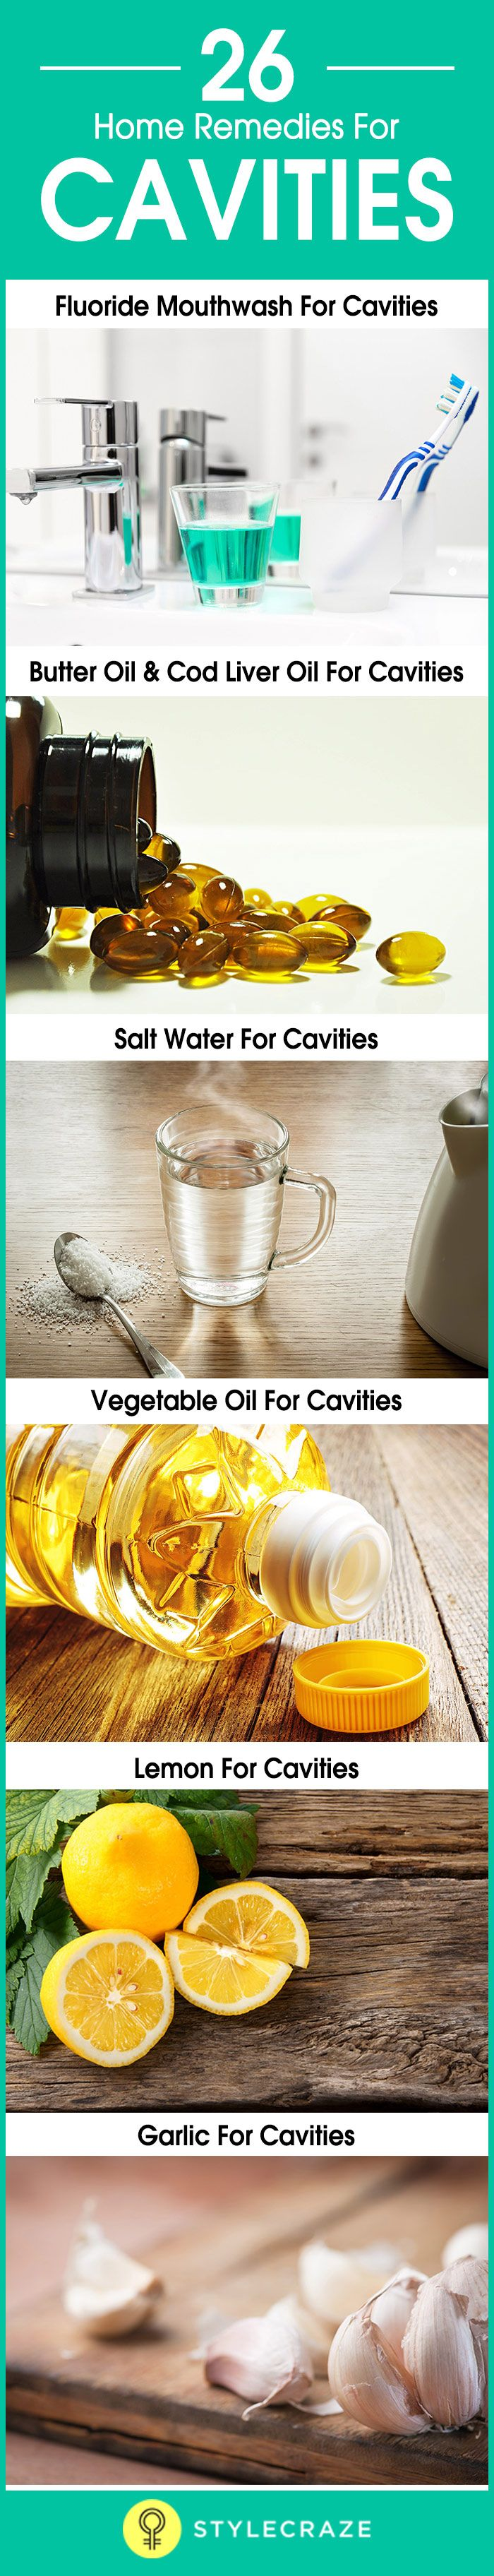 26 Effective Home Remedies For Cavities 26 Effective Home Remedies For Cavities new picture